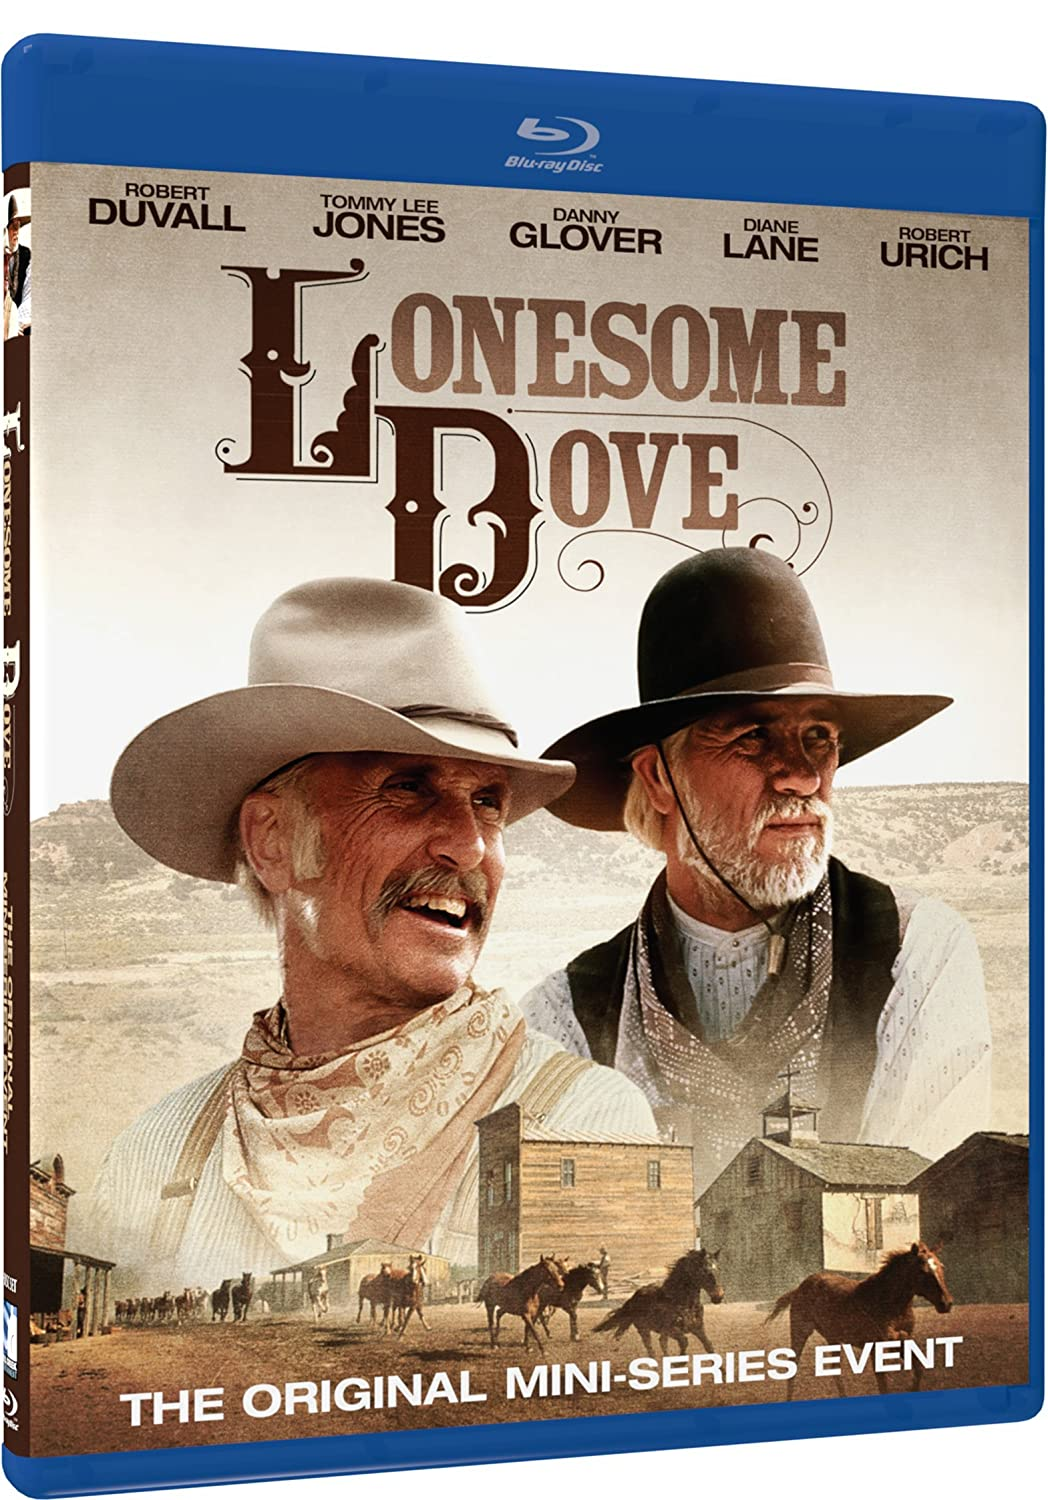 Lonesome Dove - Blu Ray [Blu-ray] Robert Duvall Tommy Lee Jones Danny Glover Simon Wincer